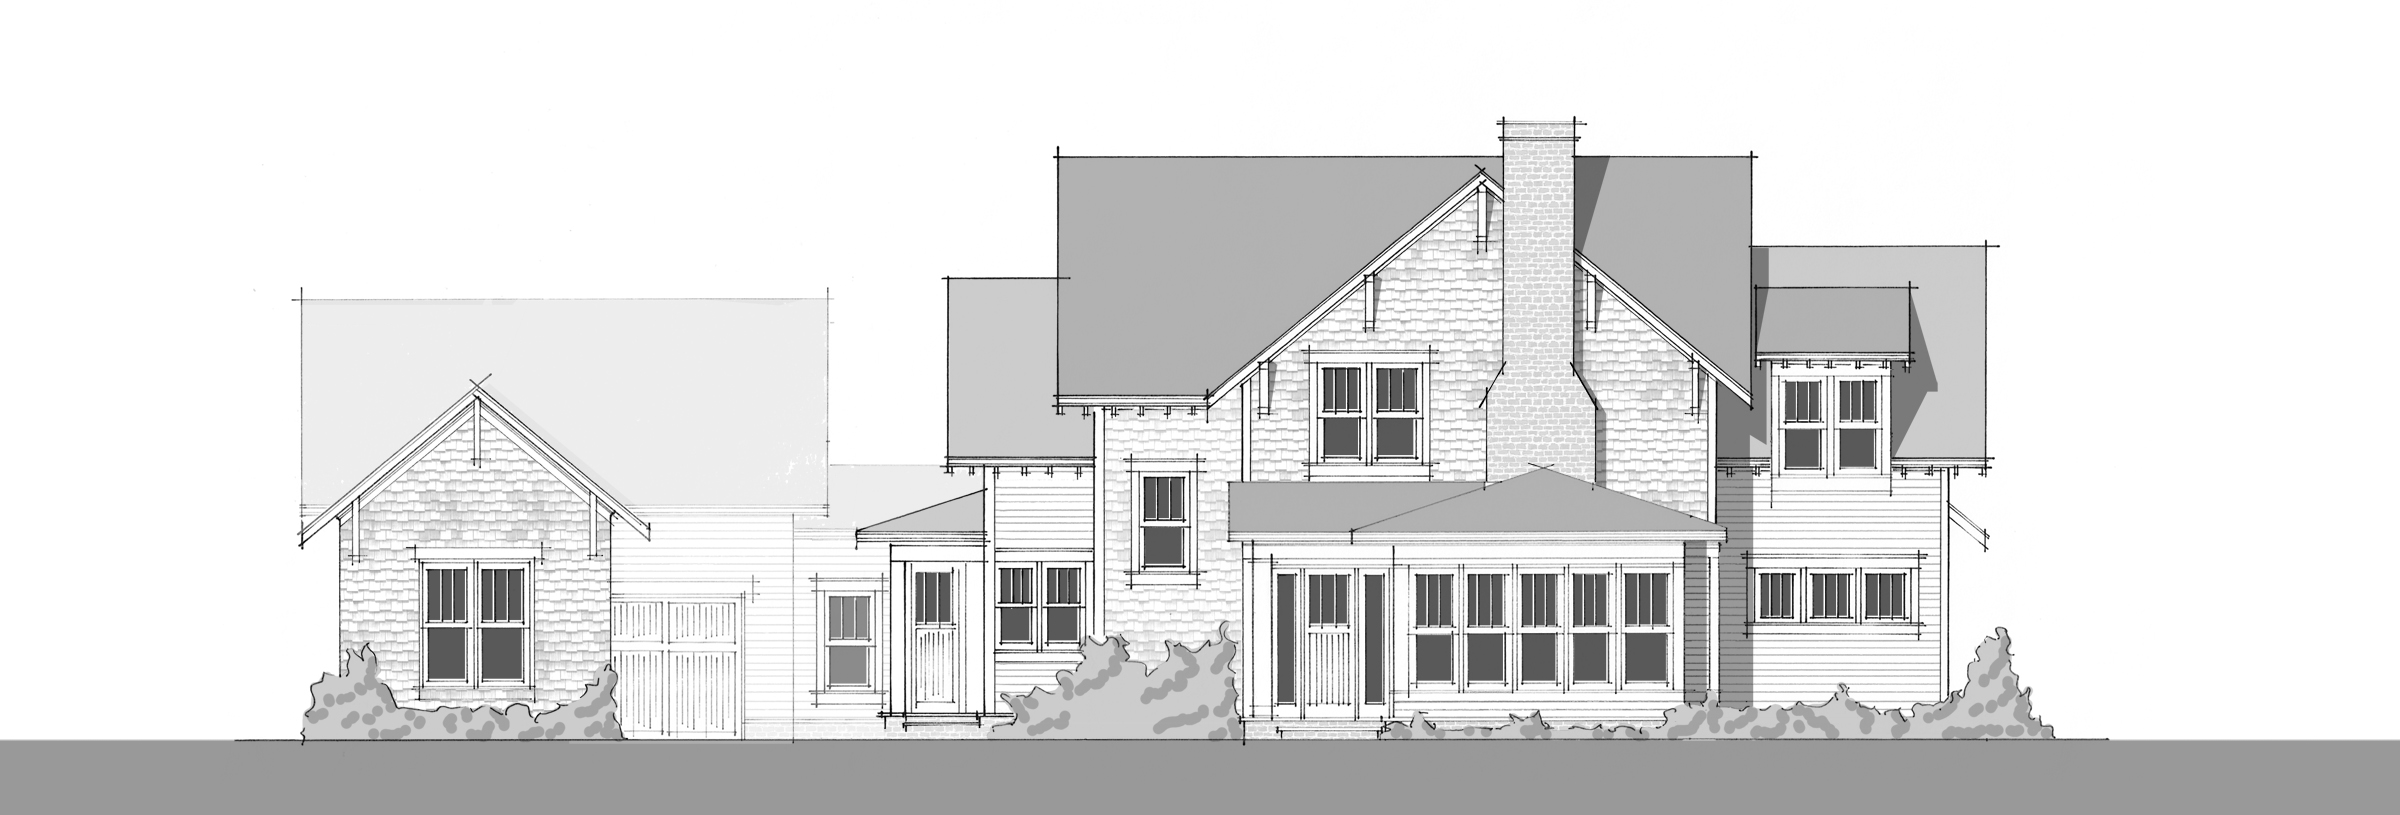 Highland Square - Front Elevation_2400